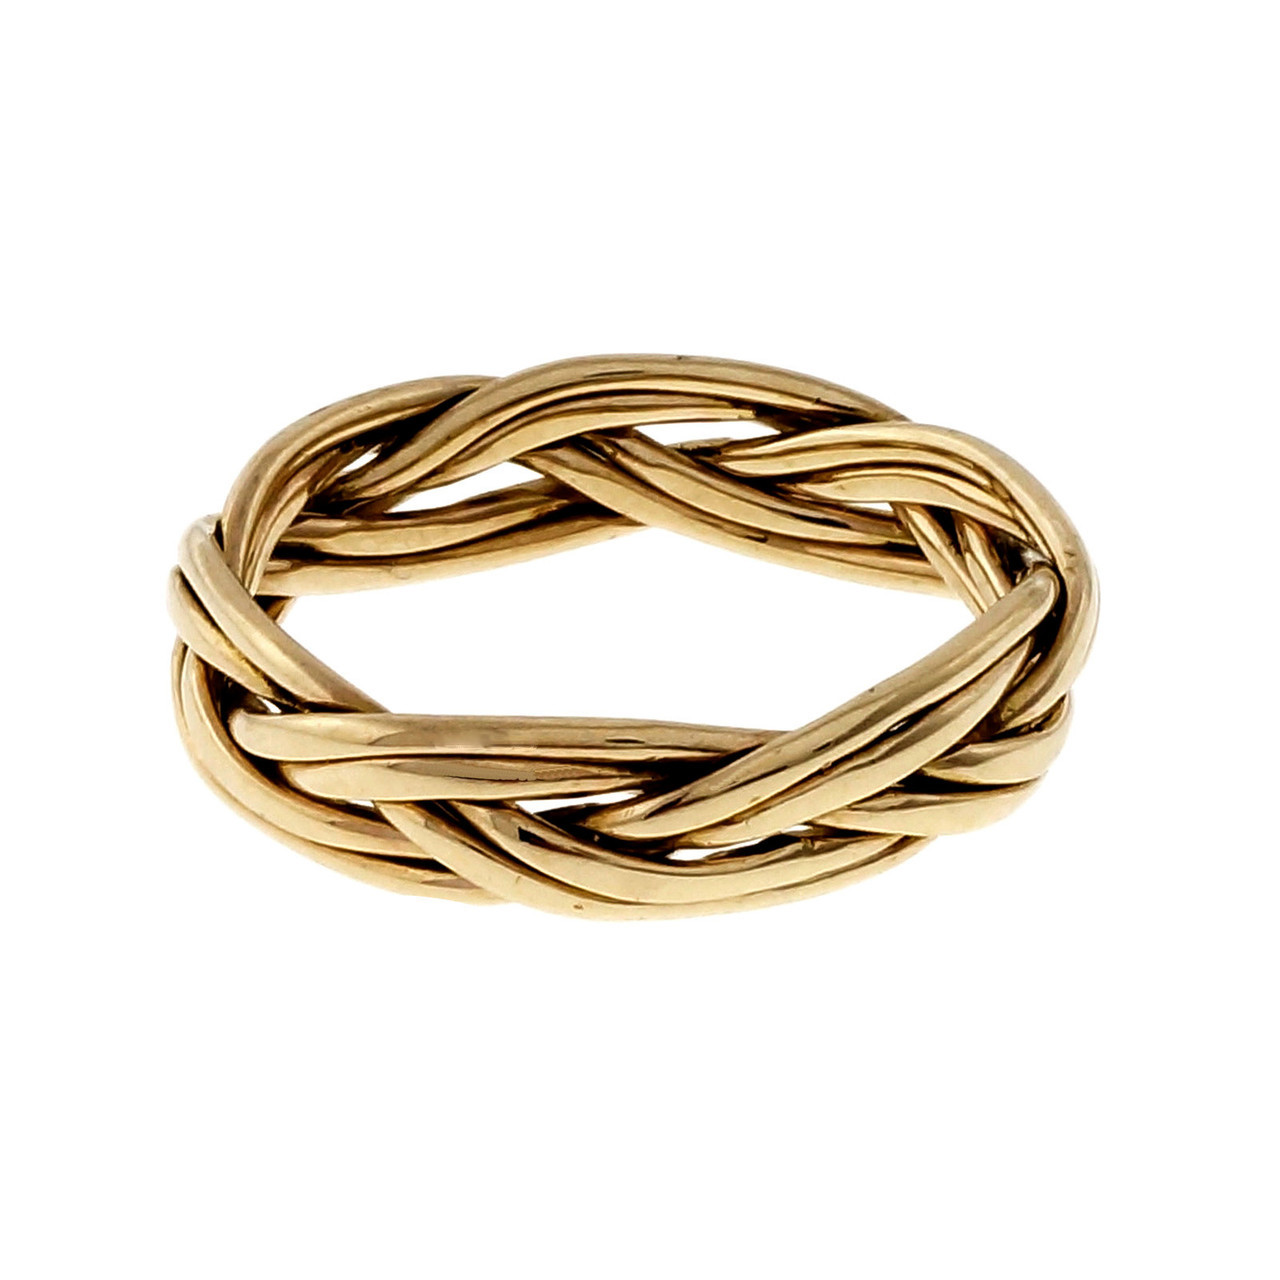 estate hand braided wire wedding band ring 14k yellow gold petersuchyjewelers [ 1280 x 1280 Pixel ]